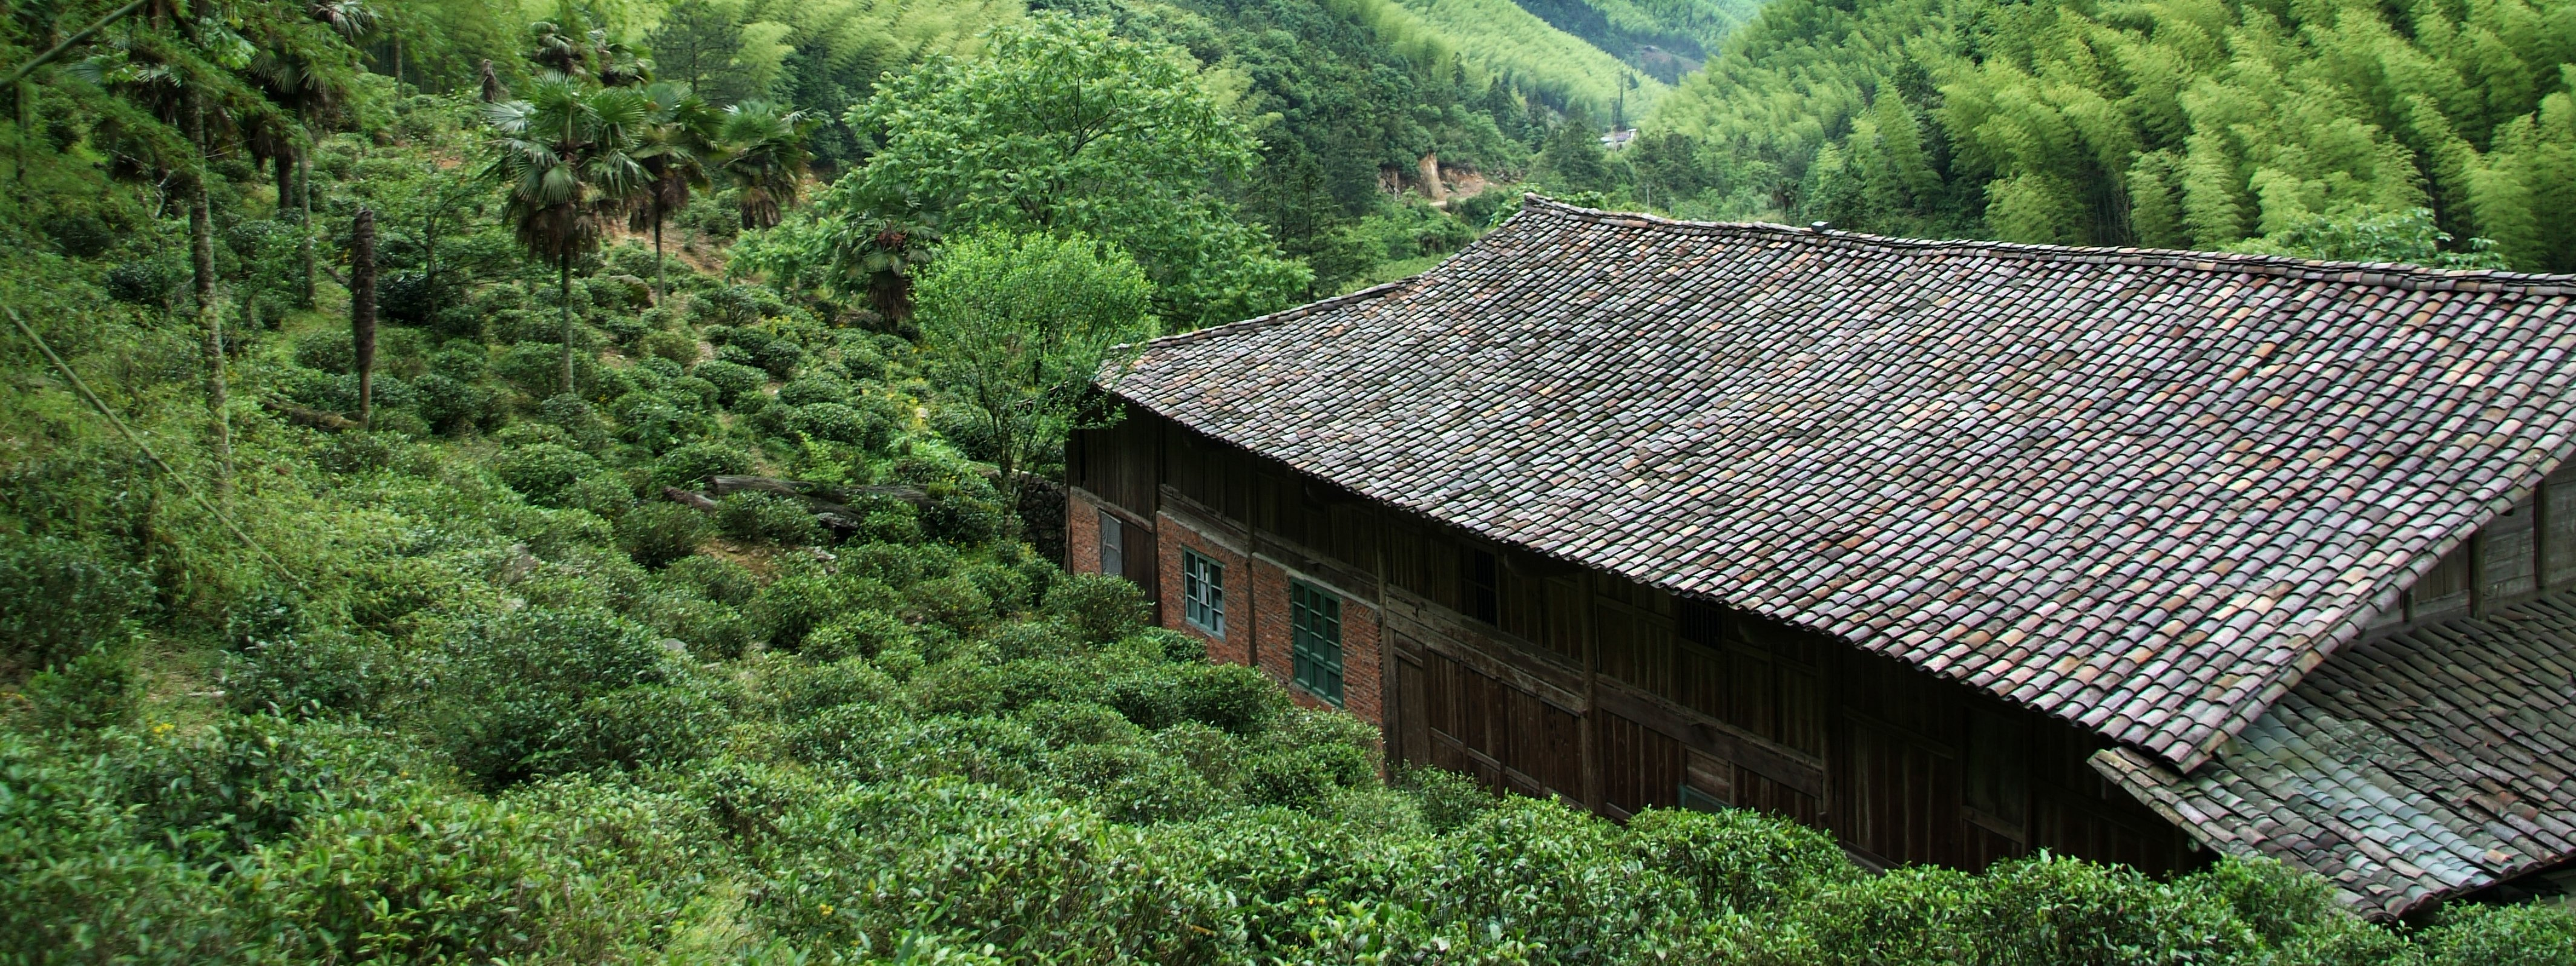 Tea-Garden_Bohea-Lapsang-Scenery_Wuyi_China